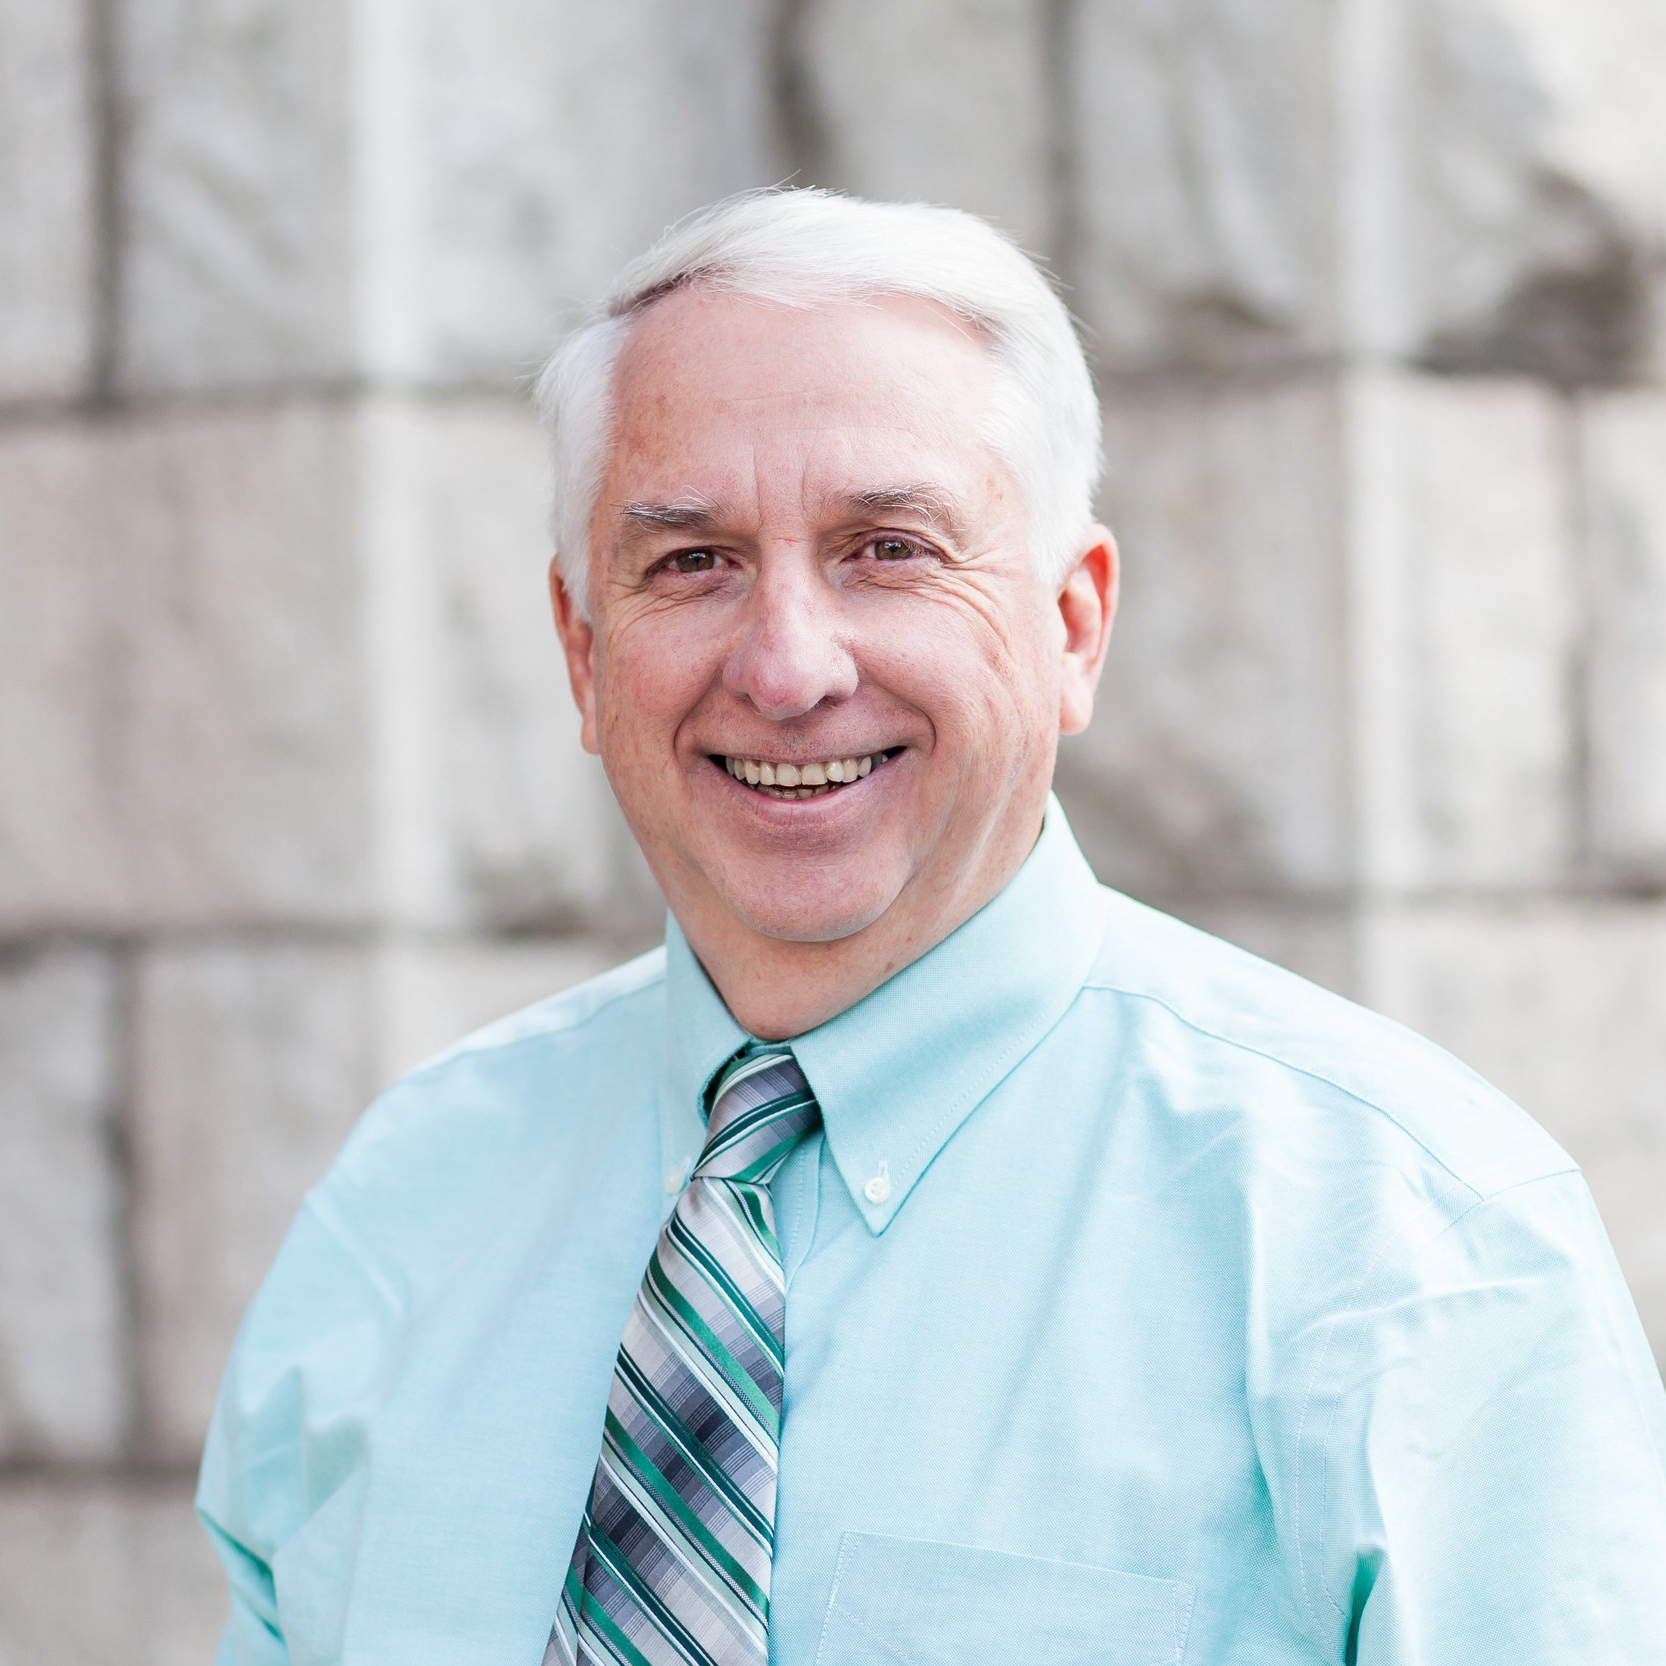 GMUMC Head Shots-4.jpg